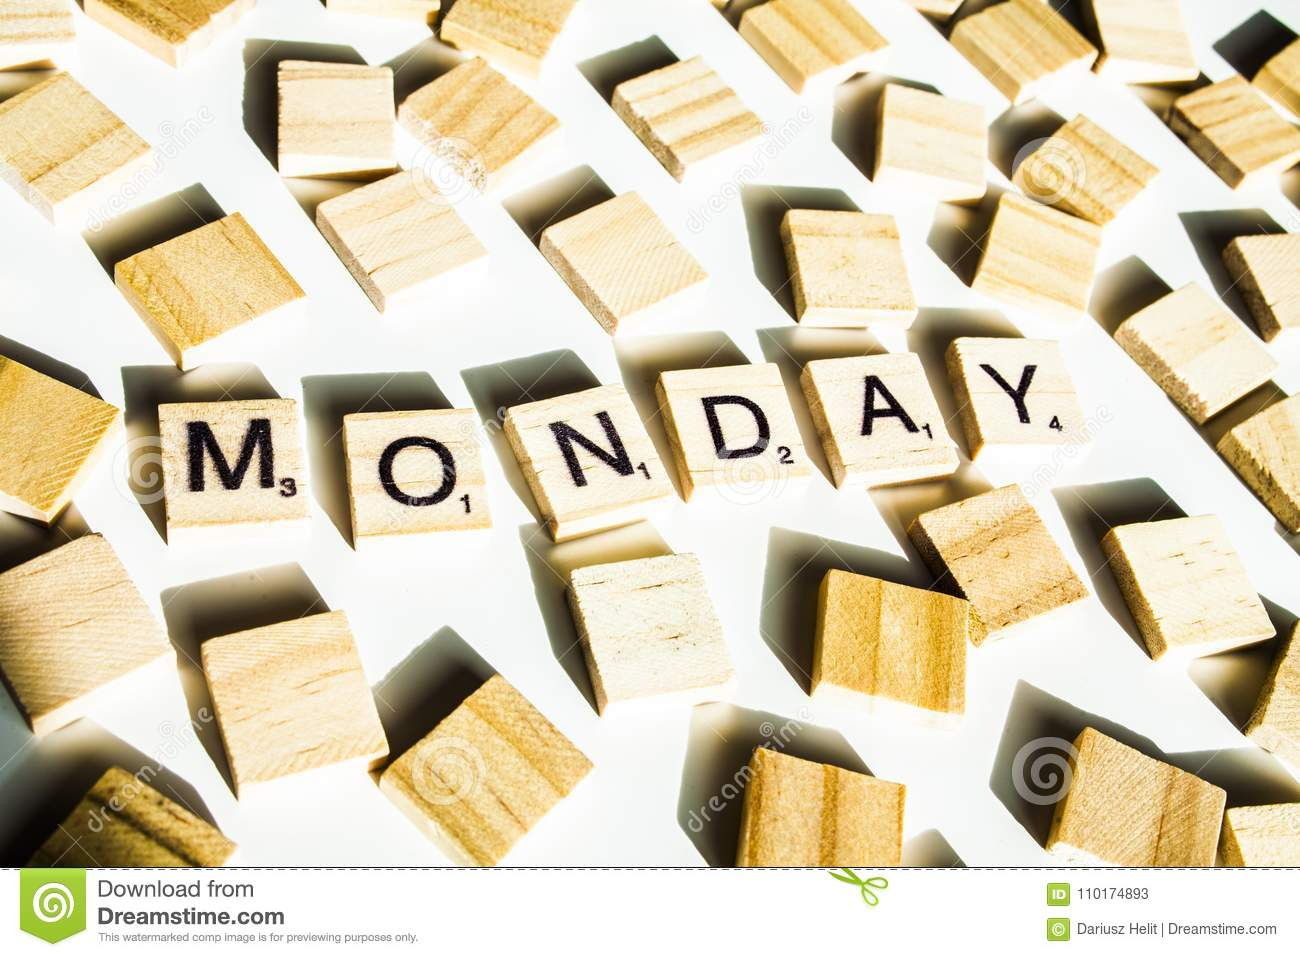 wooden scrabble letters spelling the word monday on white backround